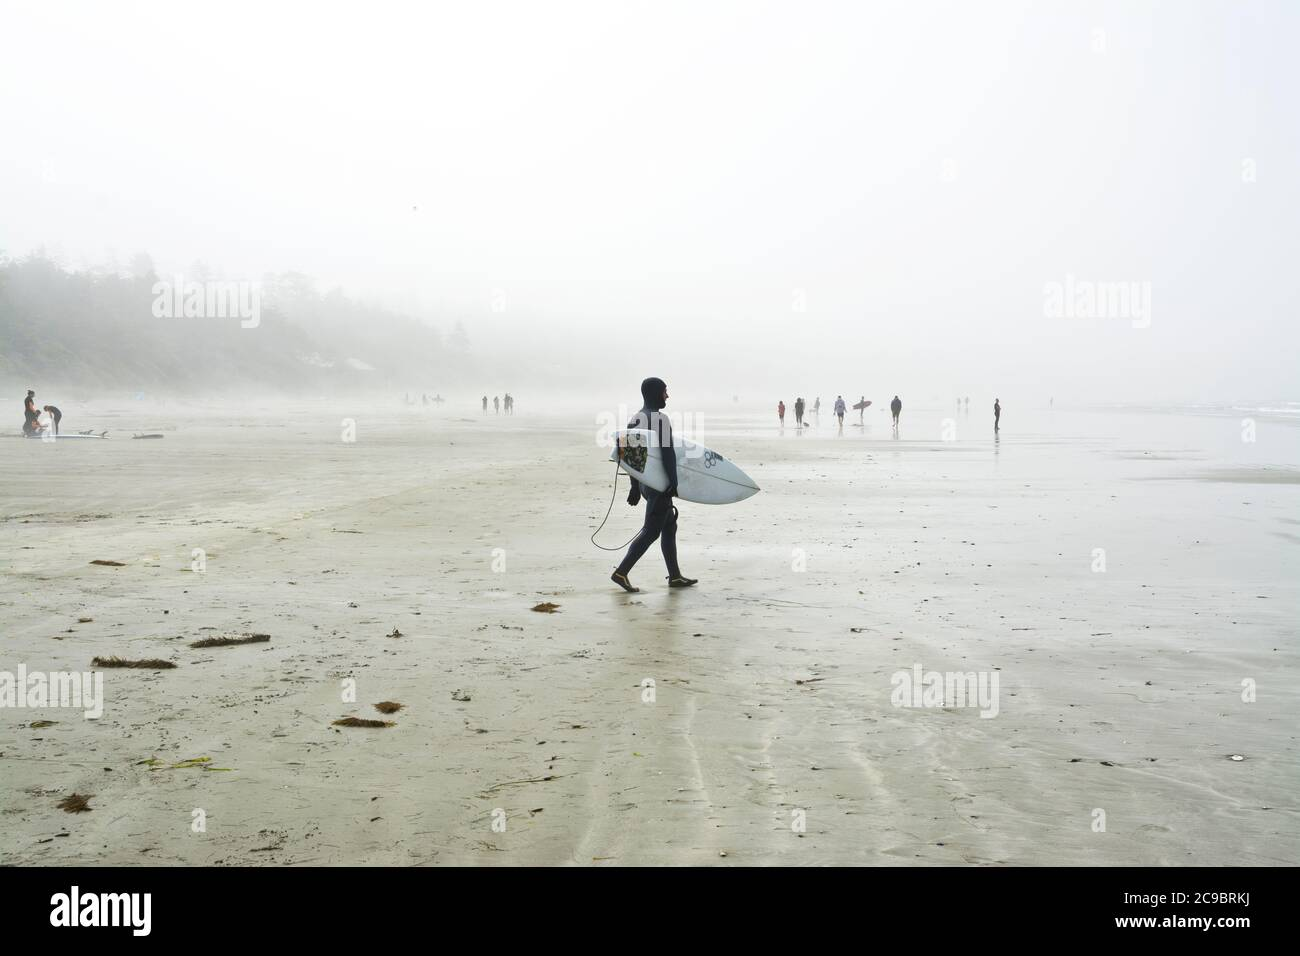 Surfer in wetsuit carrying a surfboard at Cox Bay Beach in Tofino, British Columbia, Canada.  Foggy day on the beach in Tofino, BC. Stock Photo